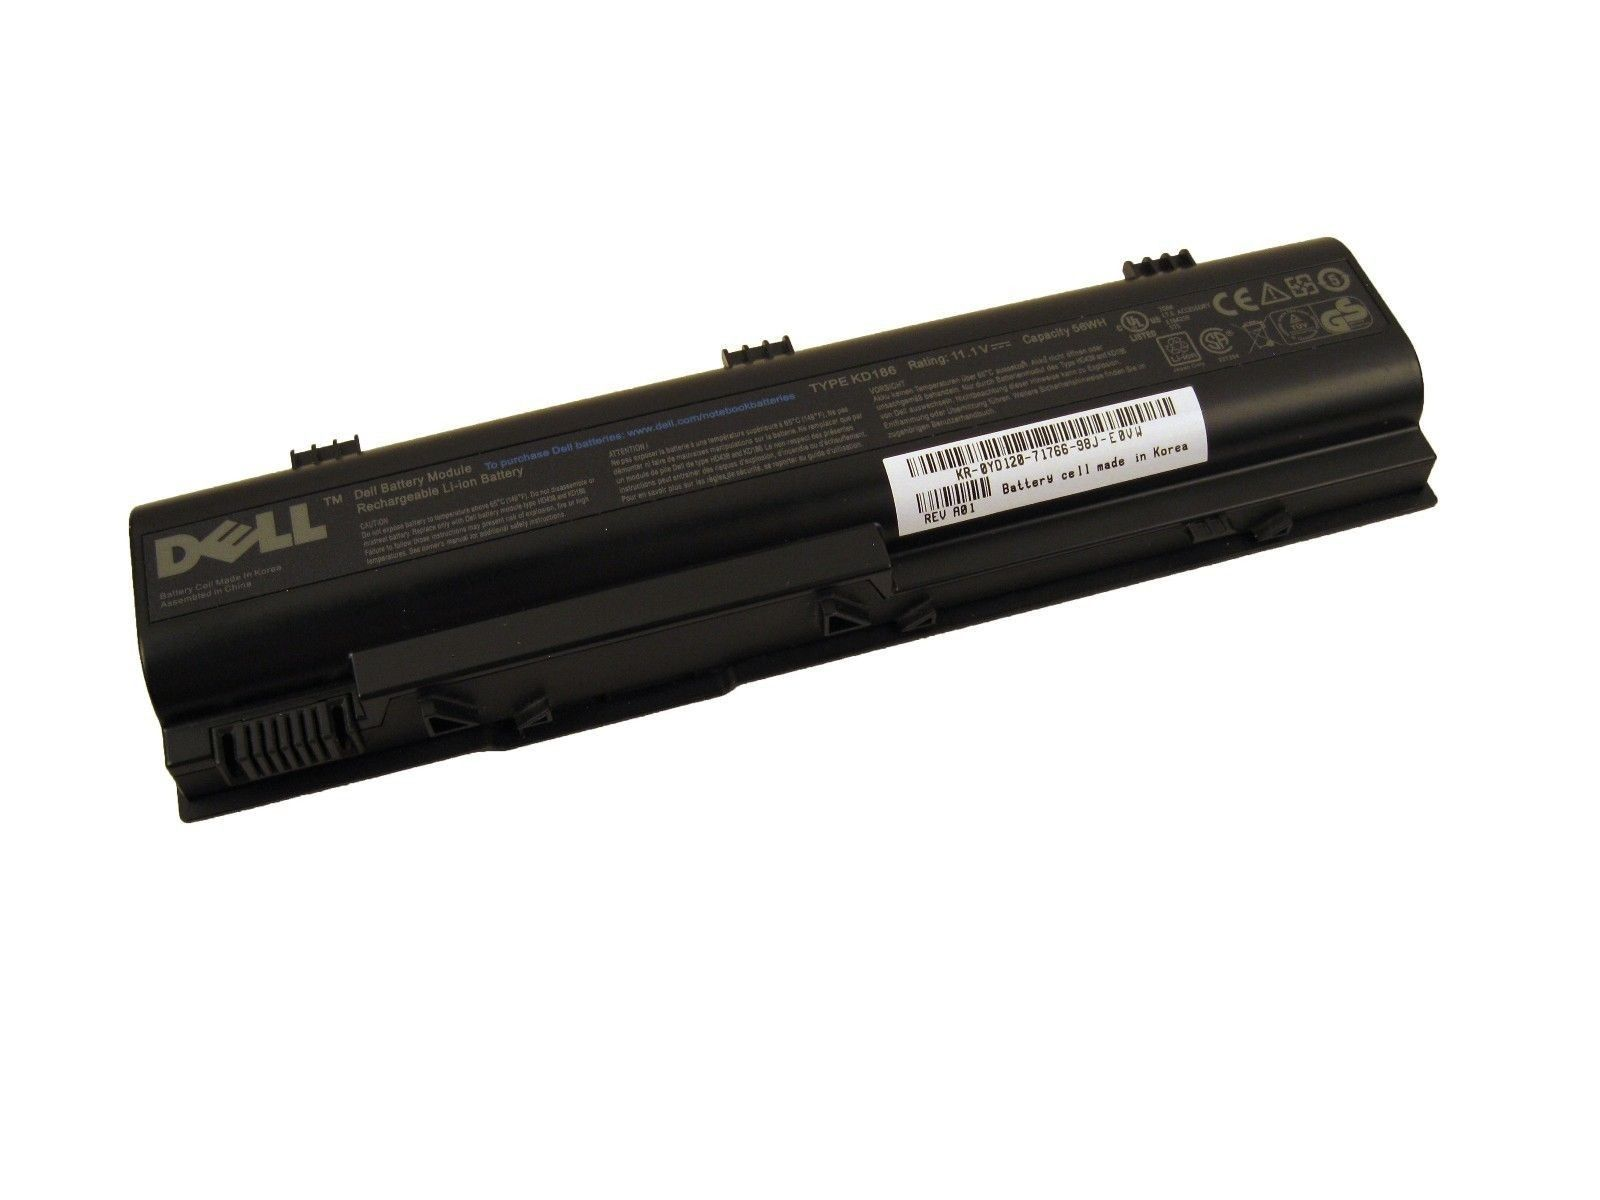 Dell YD120 Genuine Inspiron 1300 B120 Latitdue 120L 53Wh 6Cell Laptop Battery